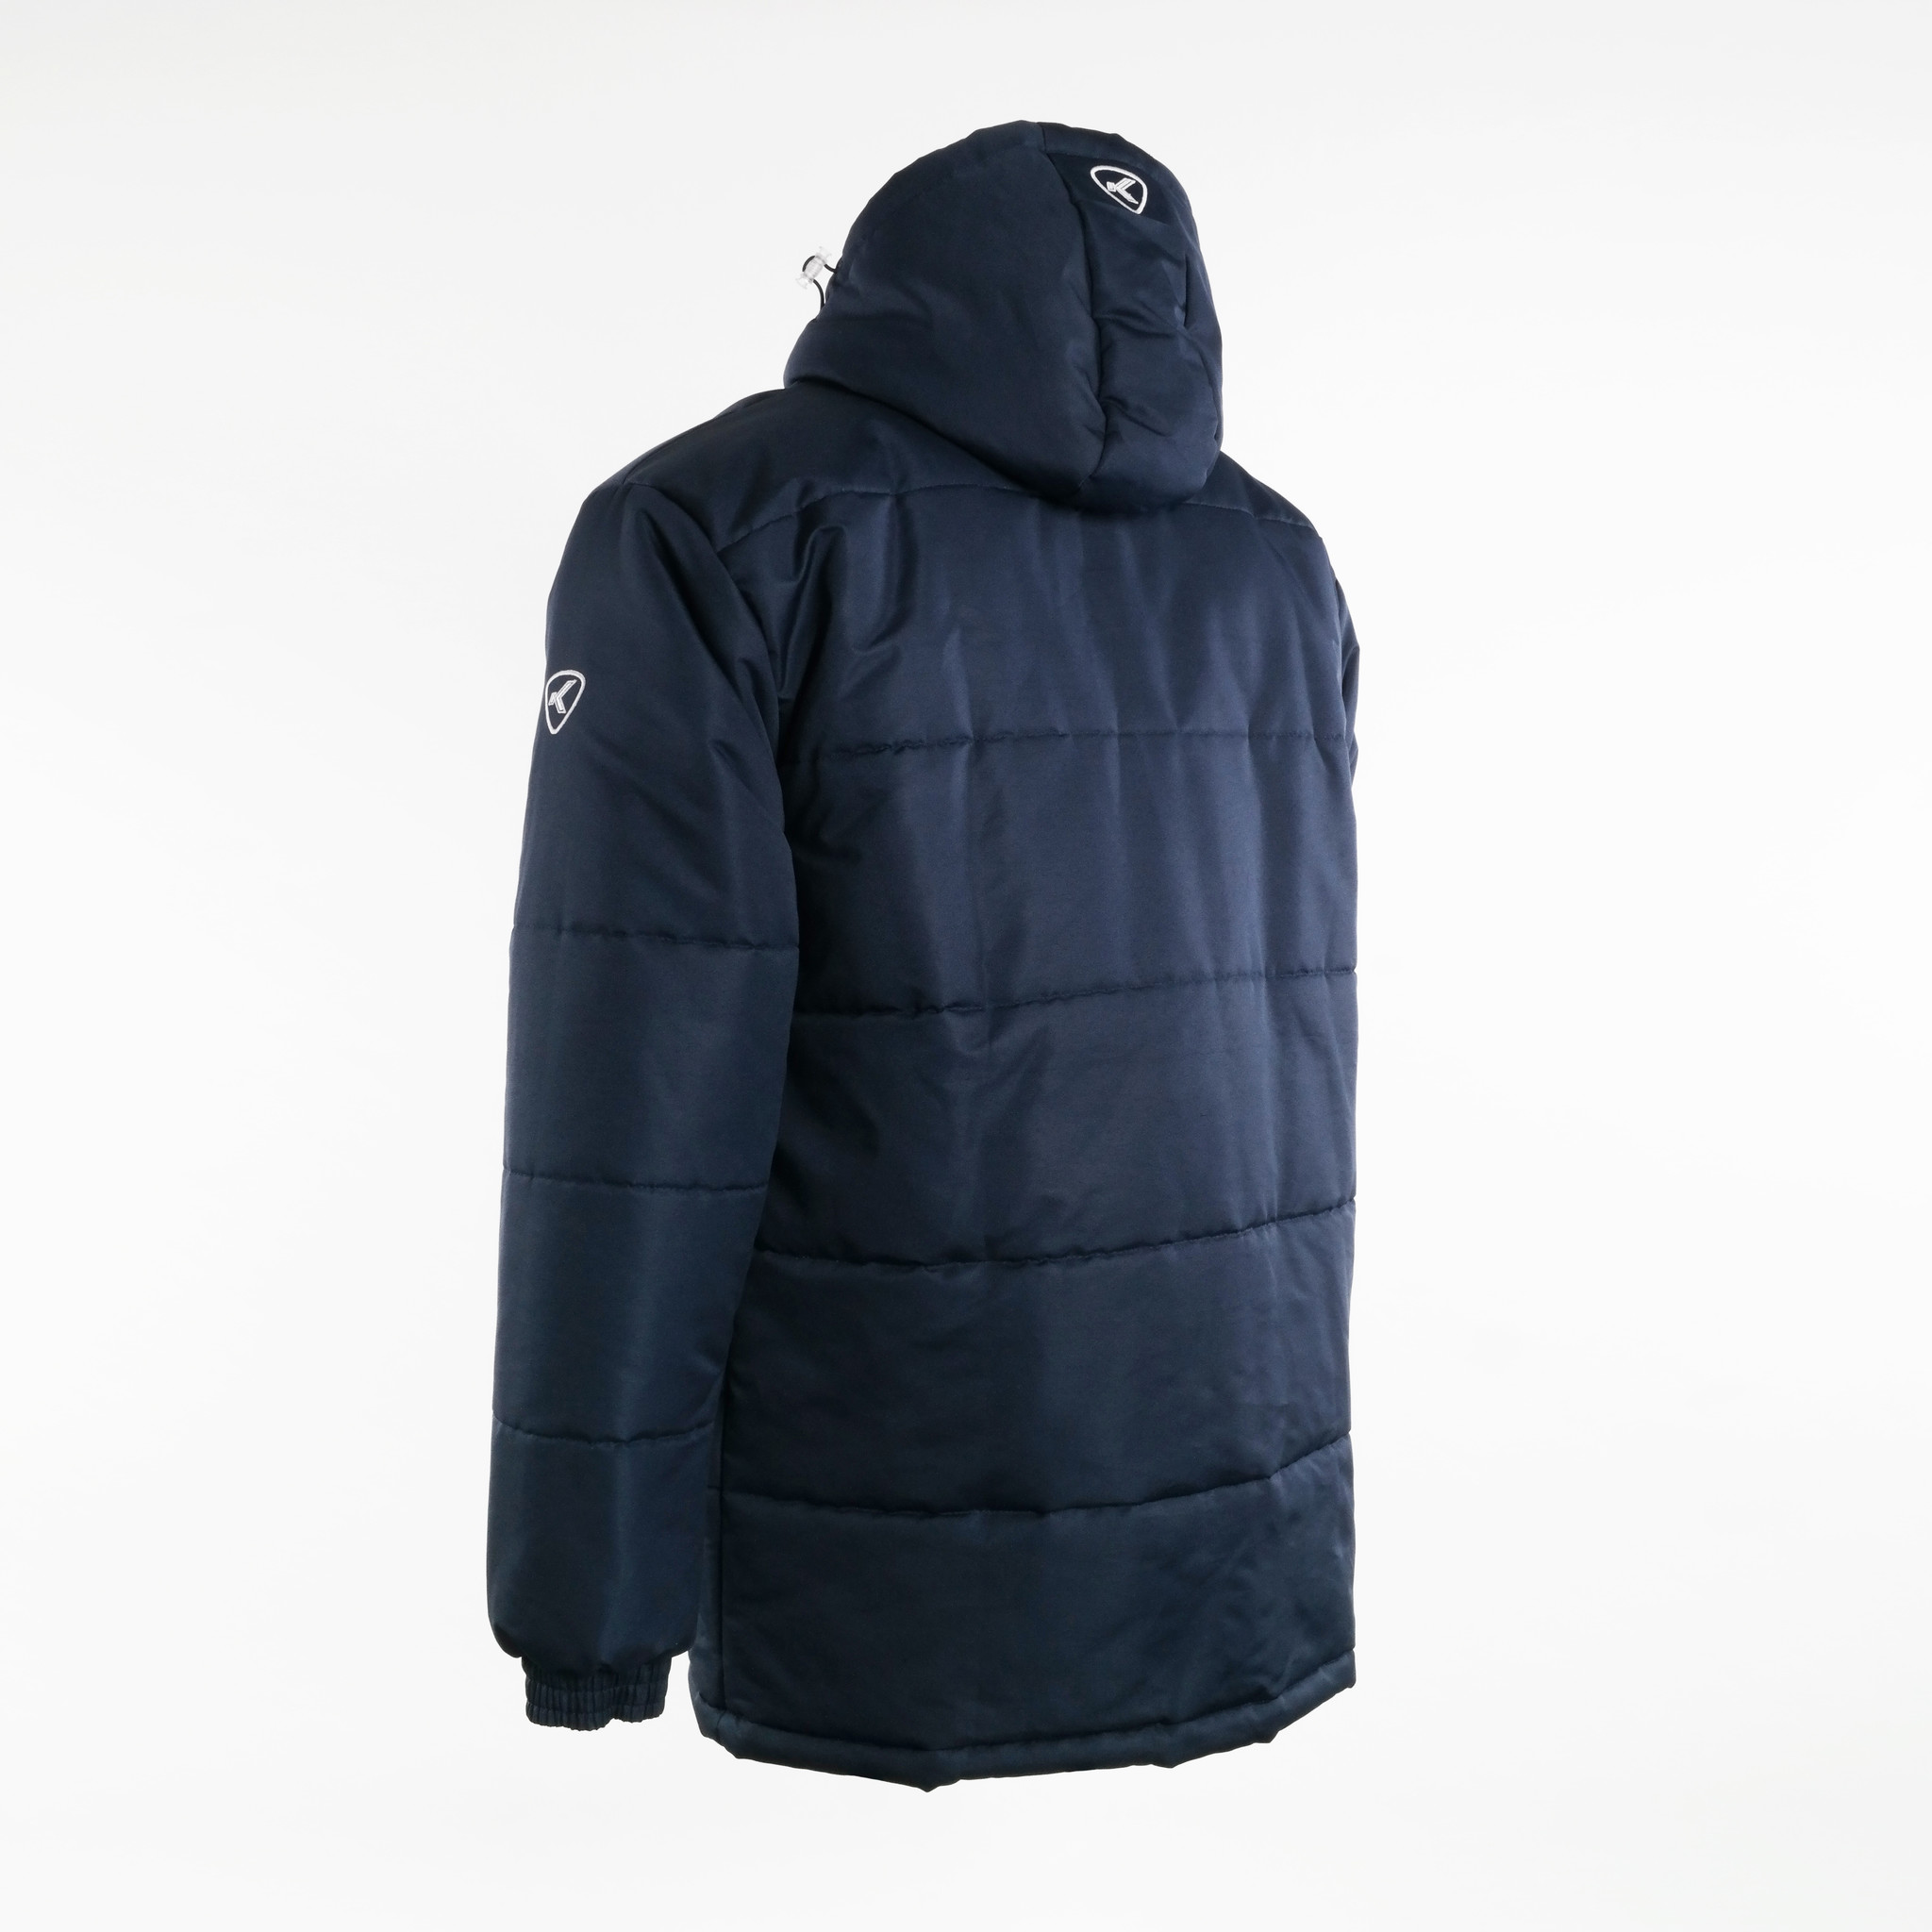 Klupp CAT Winterjas, Navy